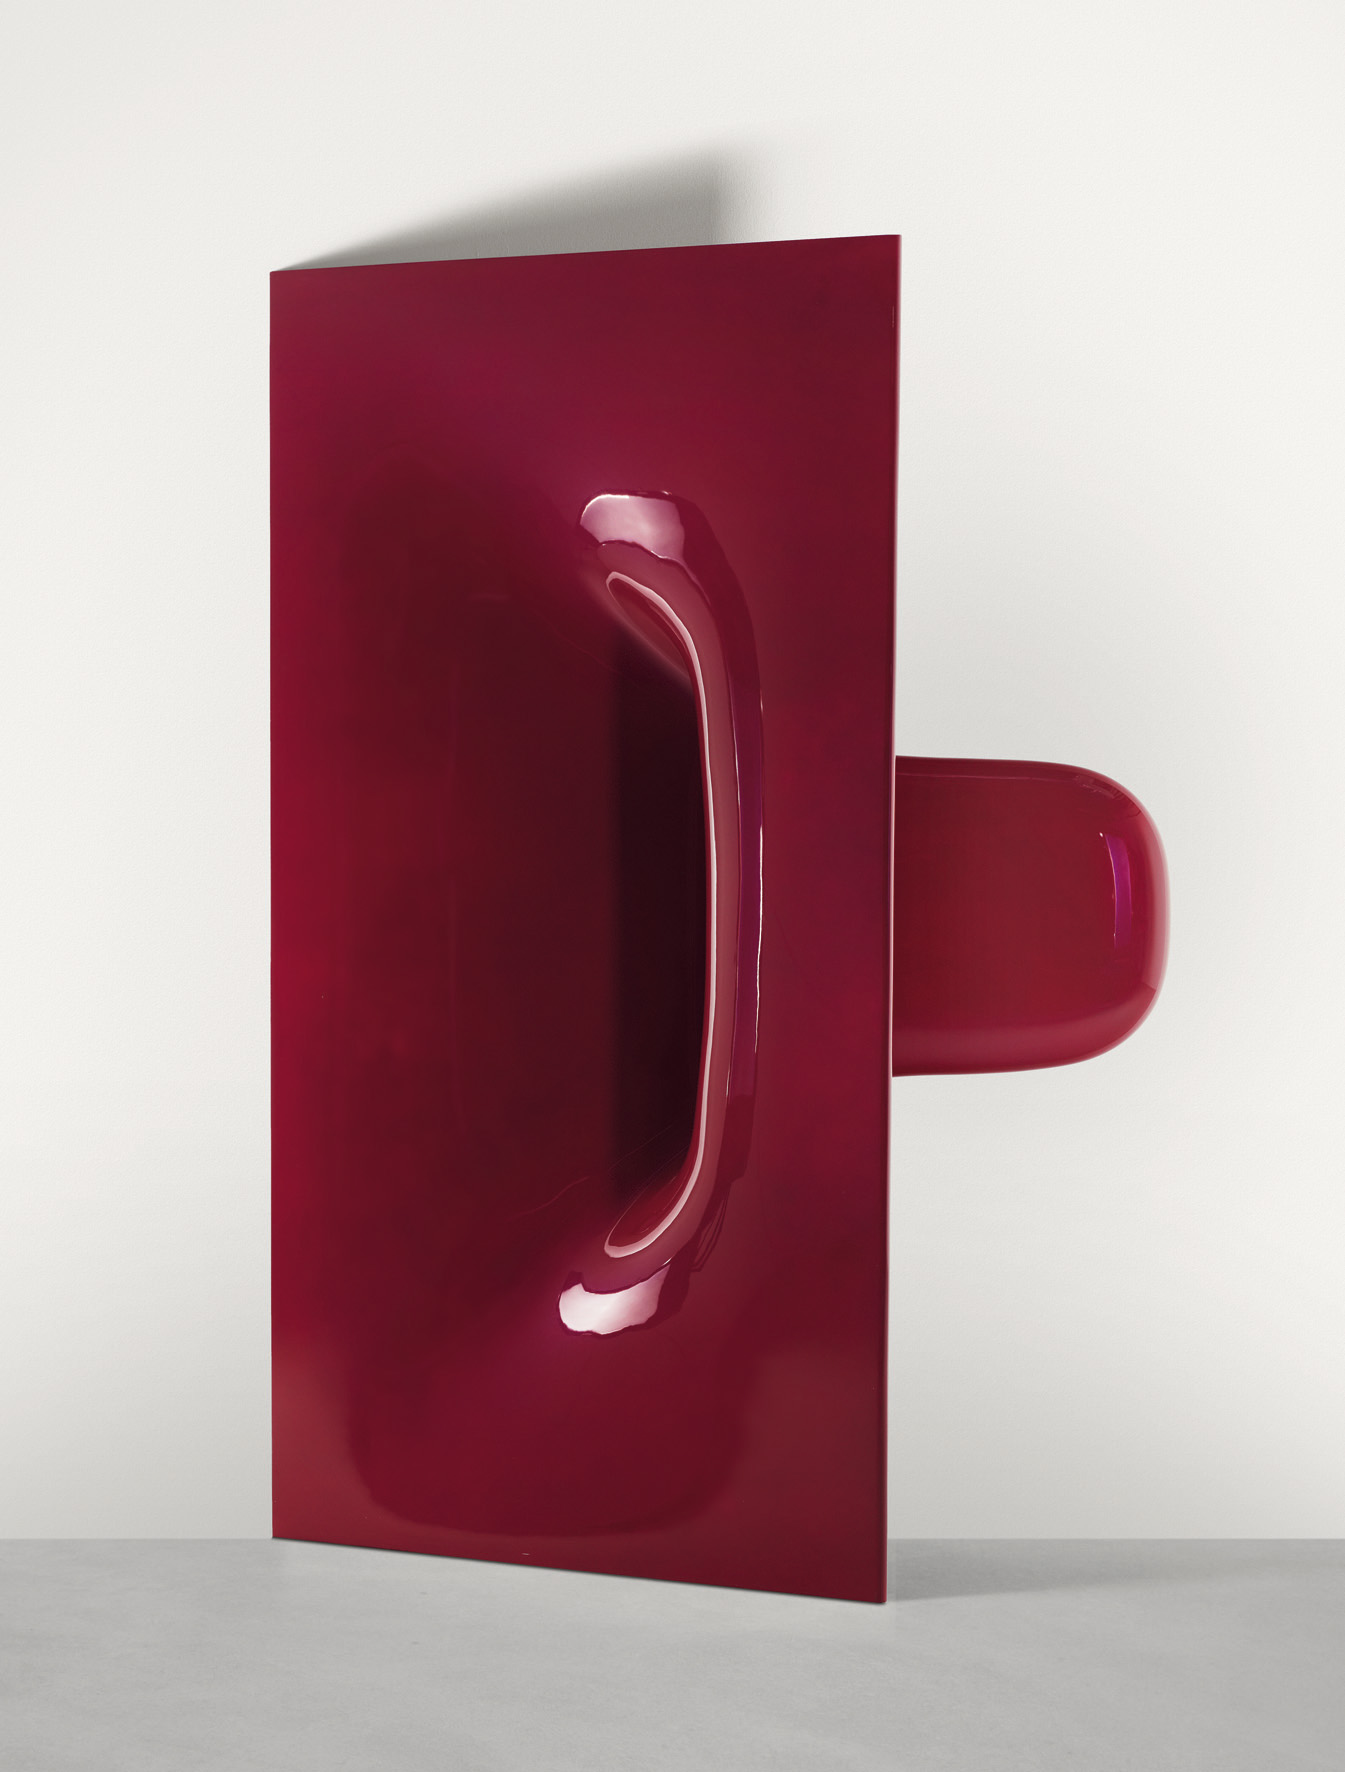 Anish Kapoor, Pouch, sculpture in red fibreglass